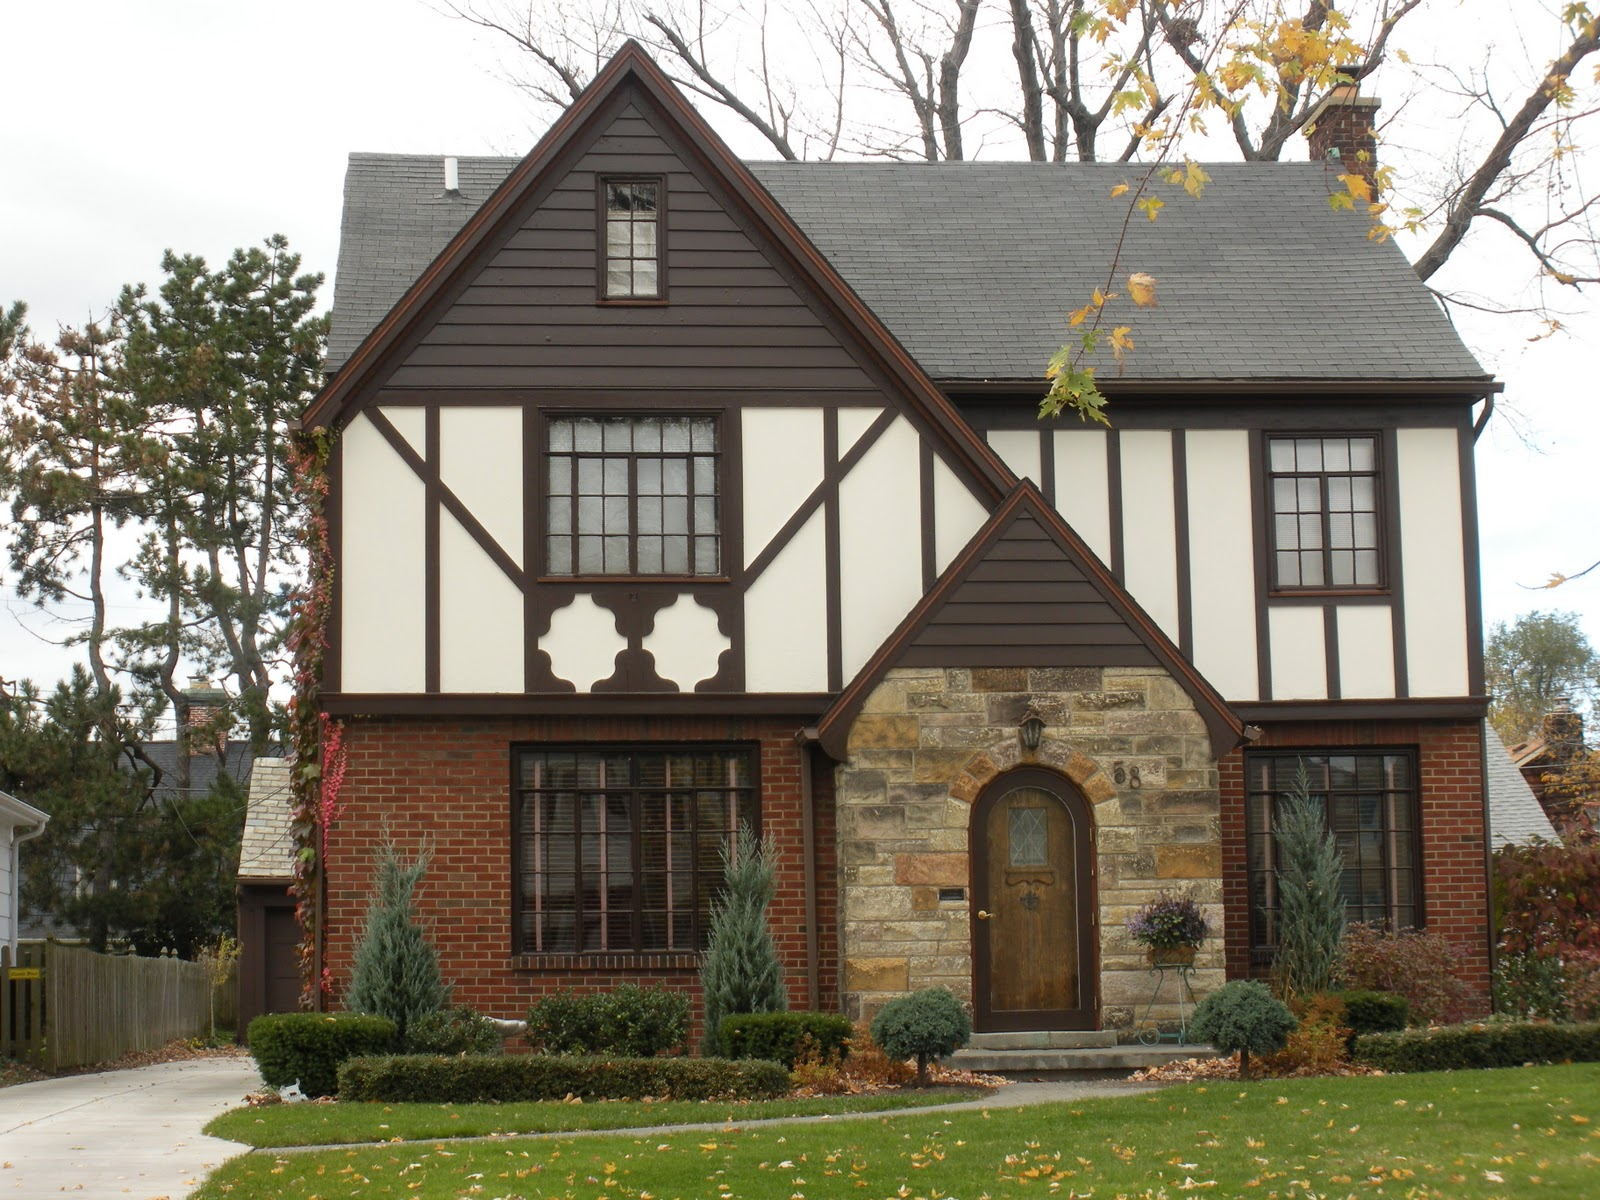 Reinventing the past housing styles of tudor ville and for Different mansion styles